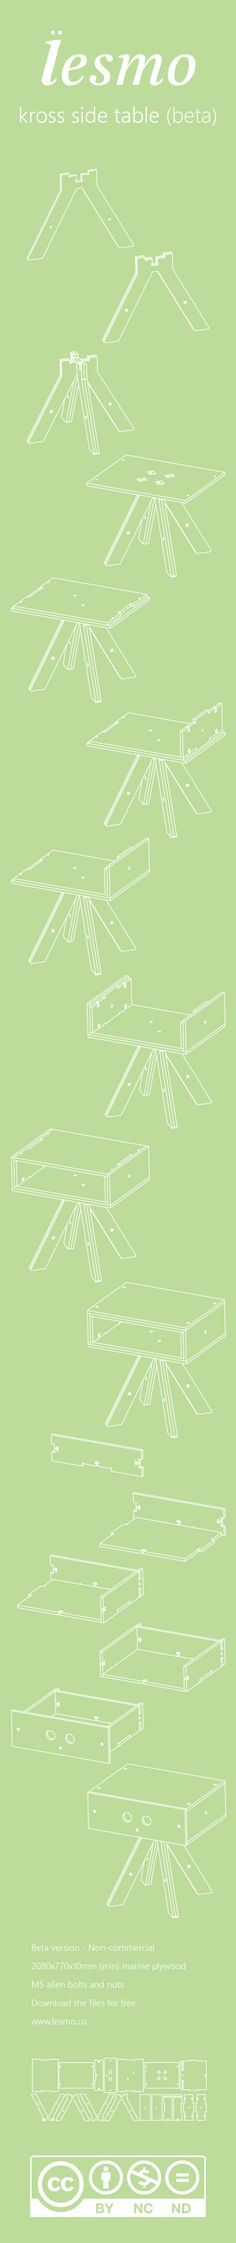 kross side table by lesmo- Free DIY CNC furniture by Paulo Victor Santos, via Behance